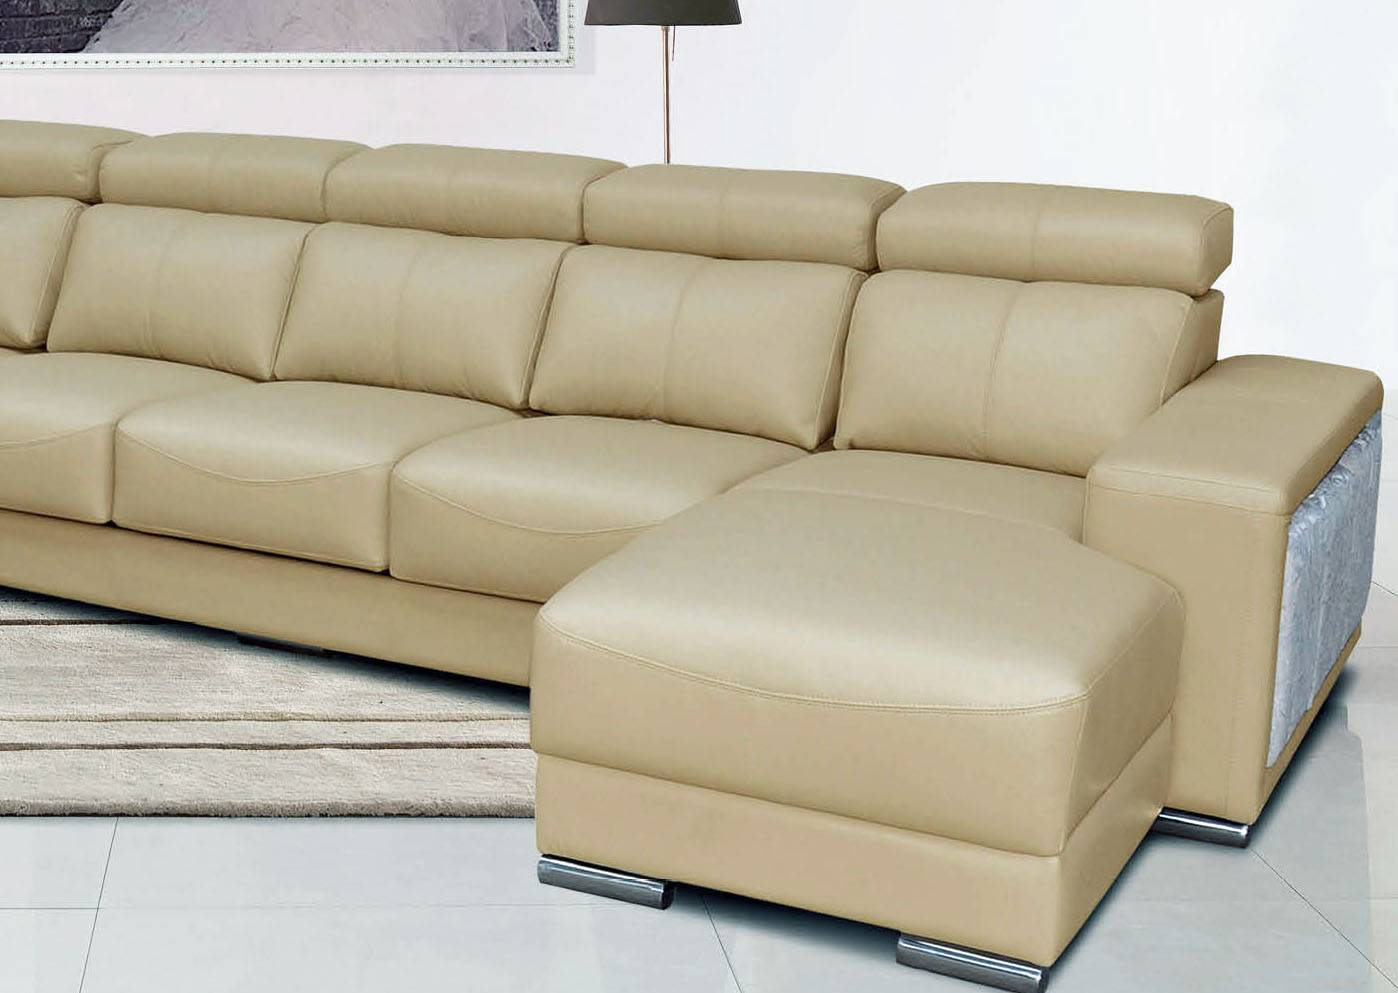 Cream Italian Leather Extra Large Sectional With Cup